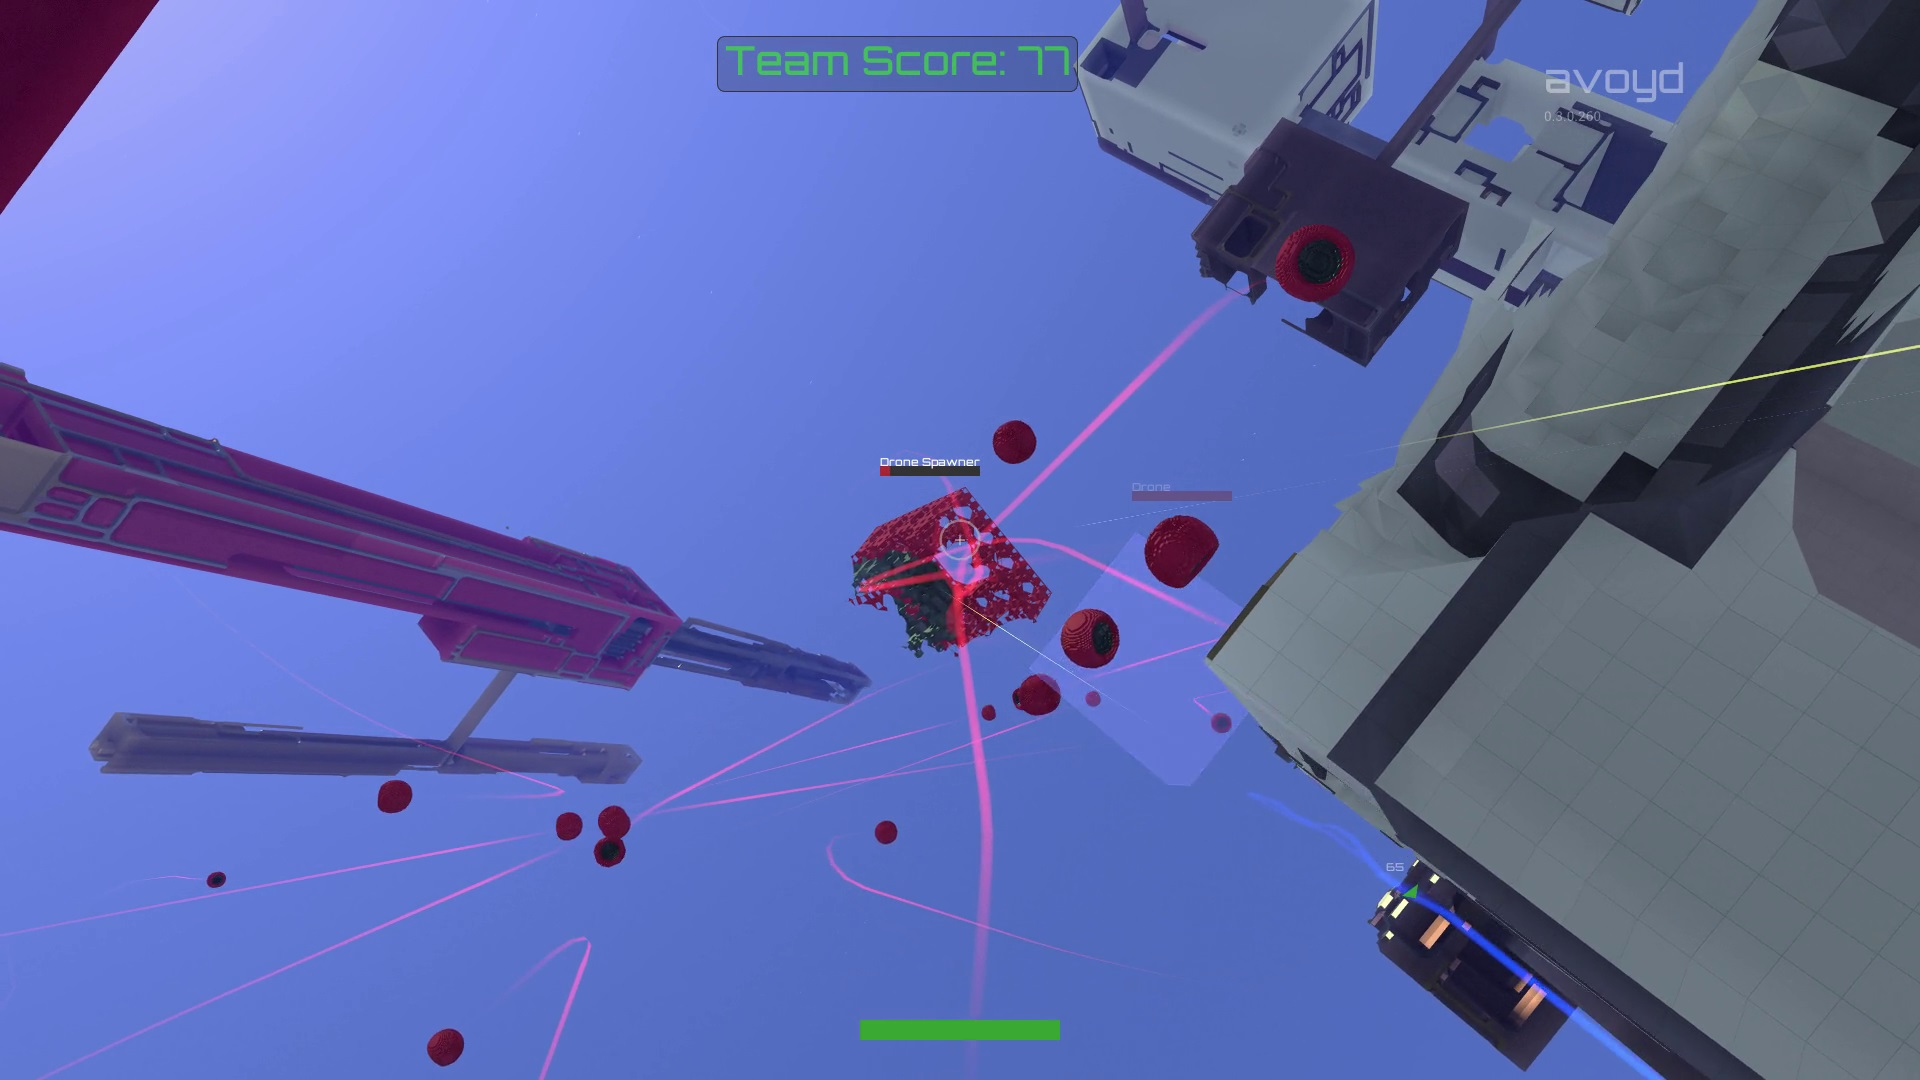 Avoyd version 3.0 - a damaged drone spawner spews a wave of drone fighters